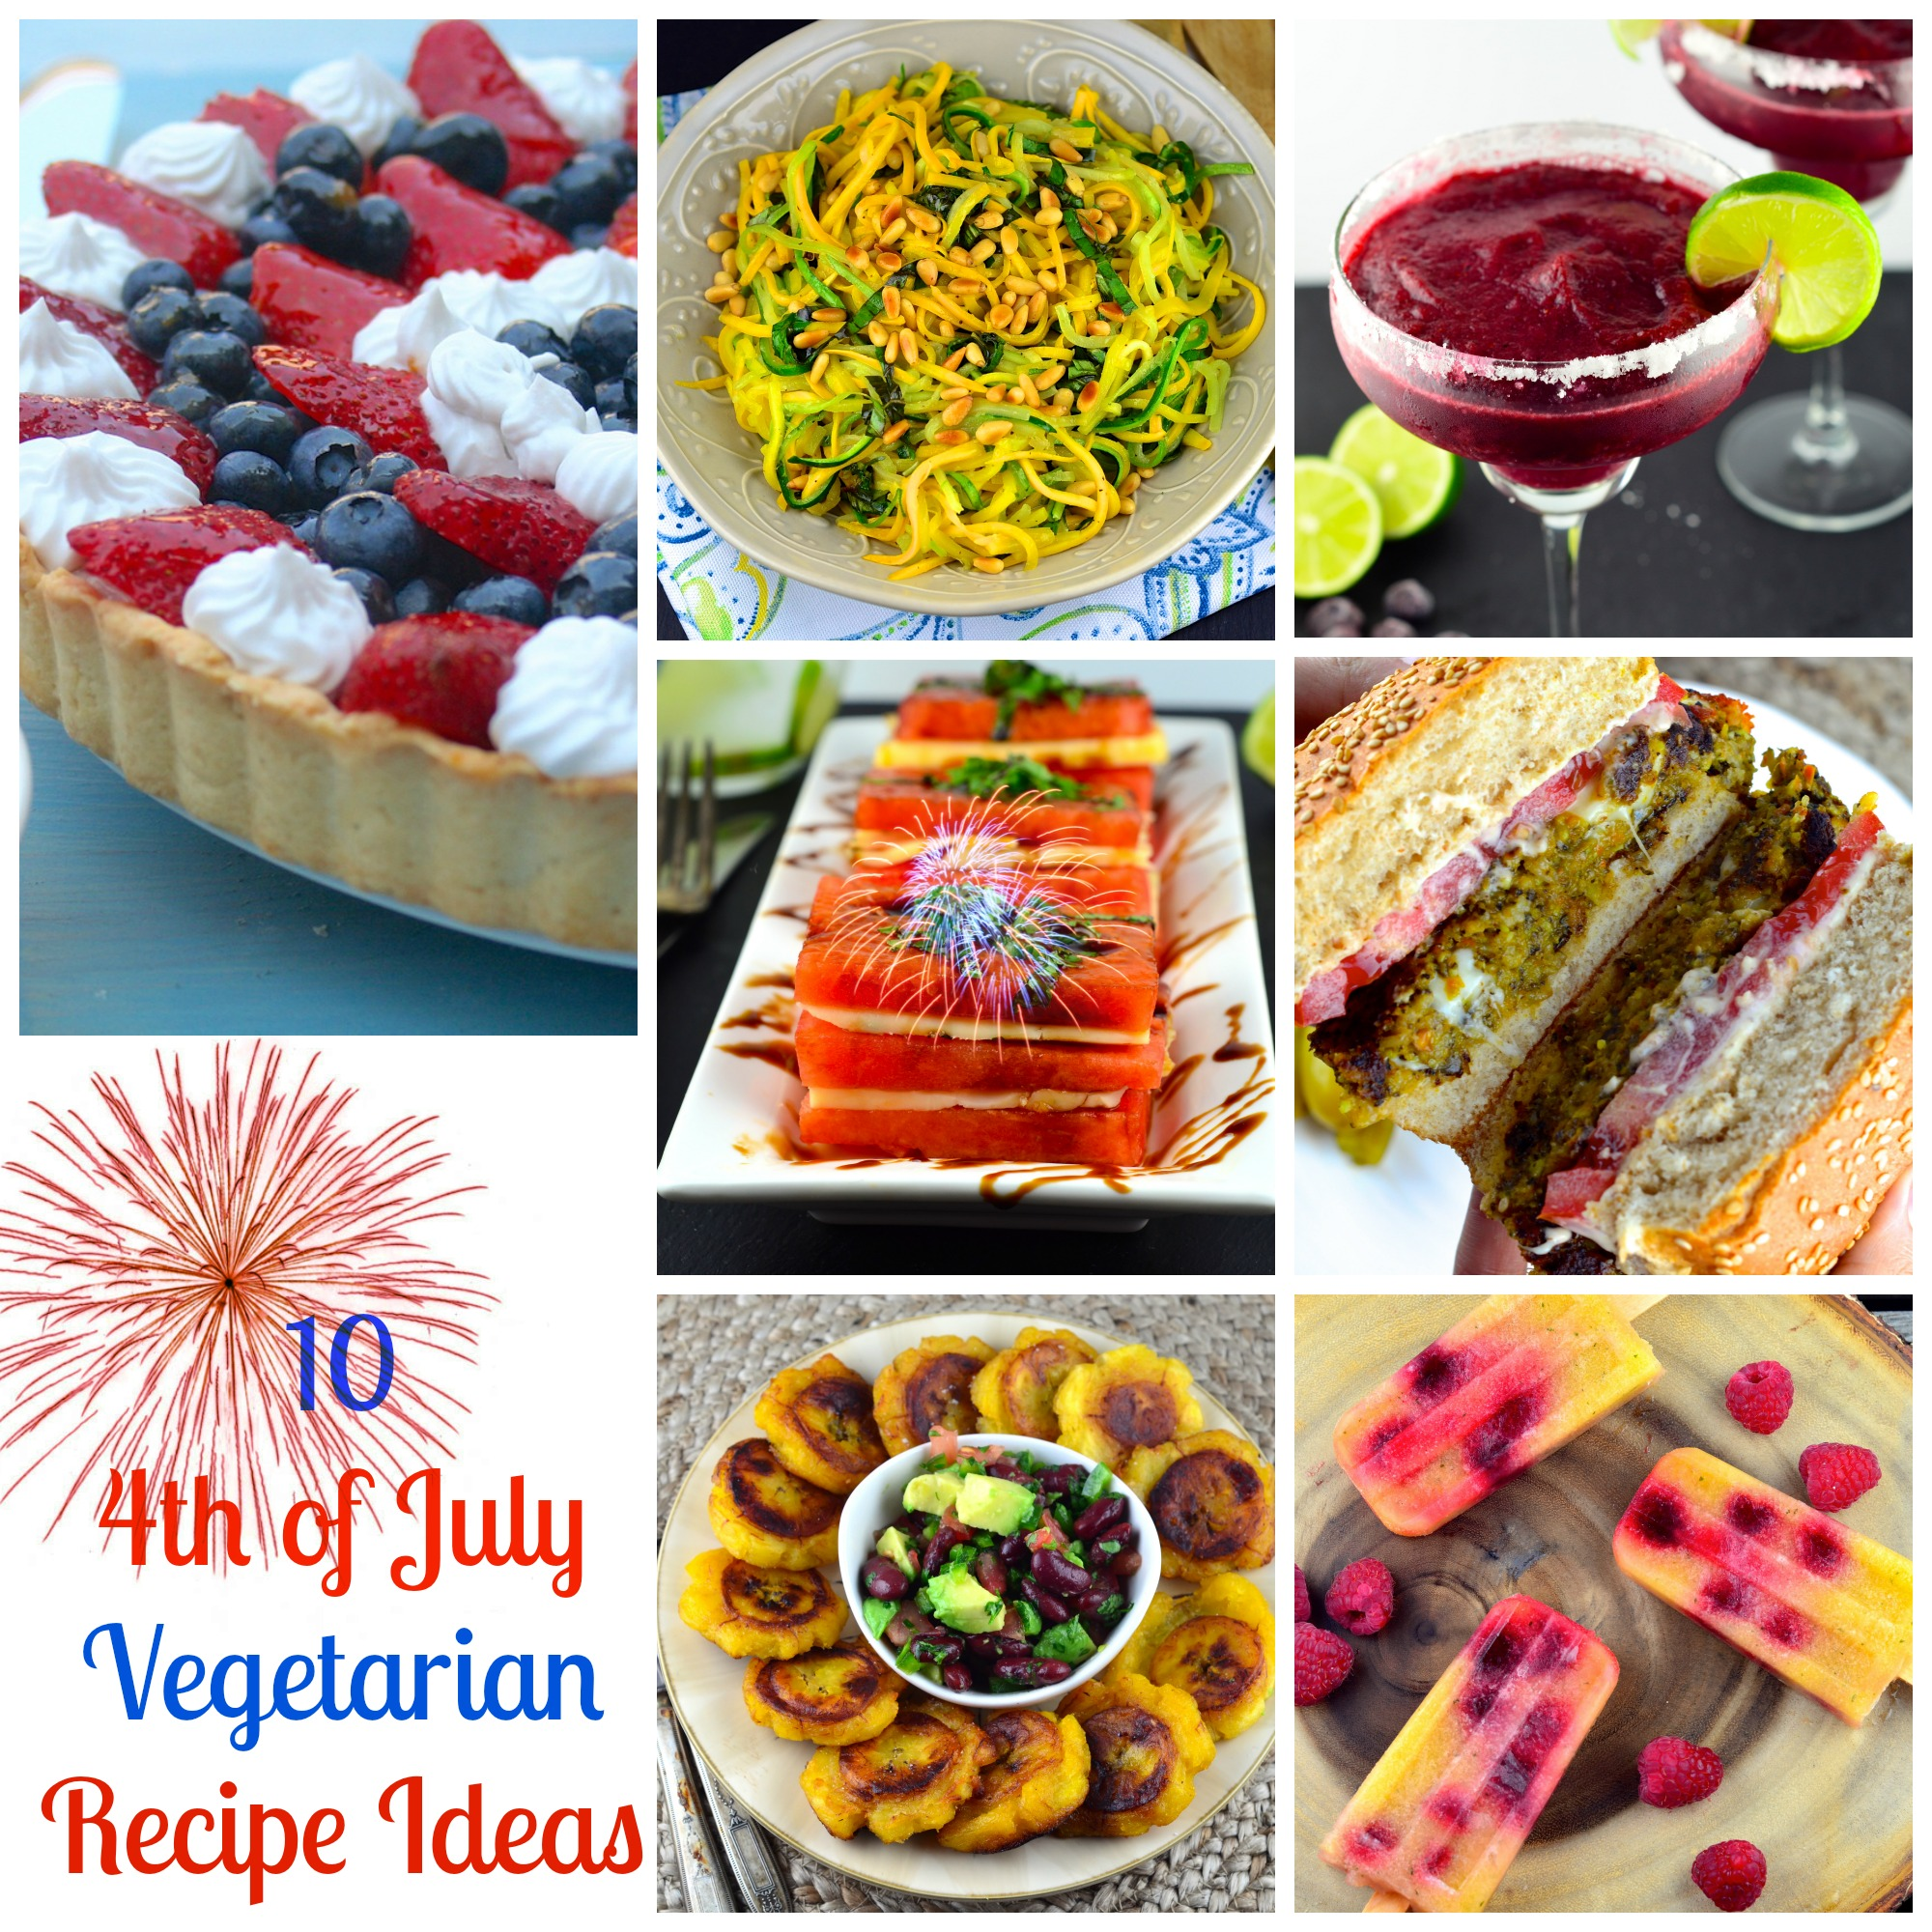 Ten 4th of July Vegetarian Recipe Ideas